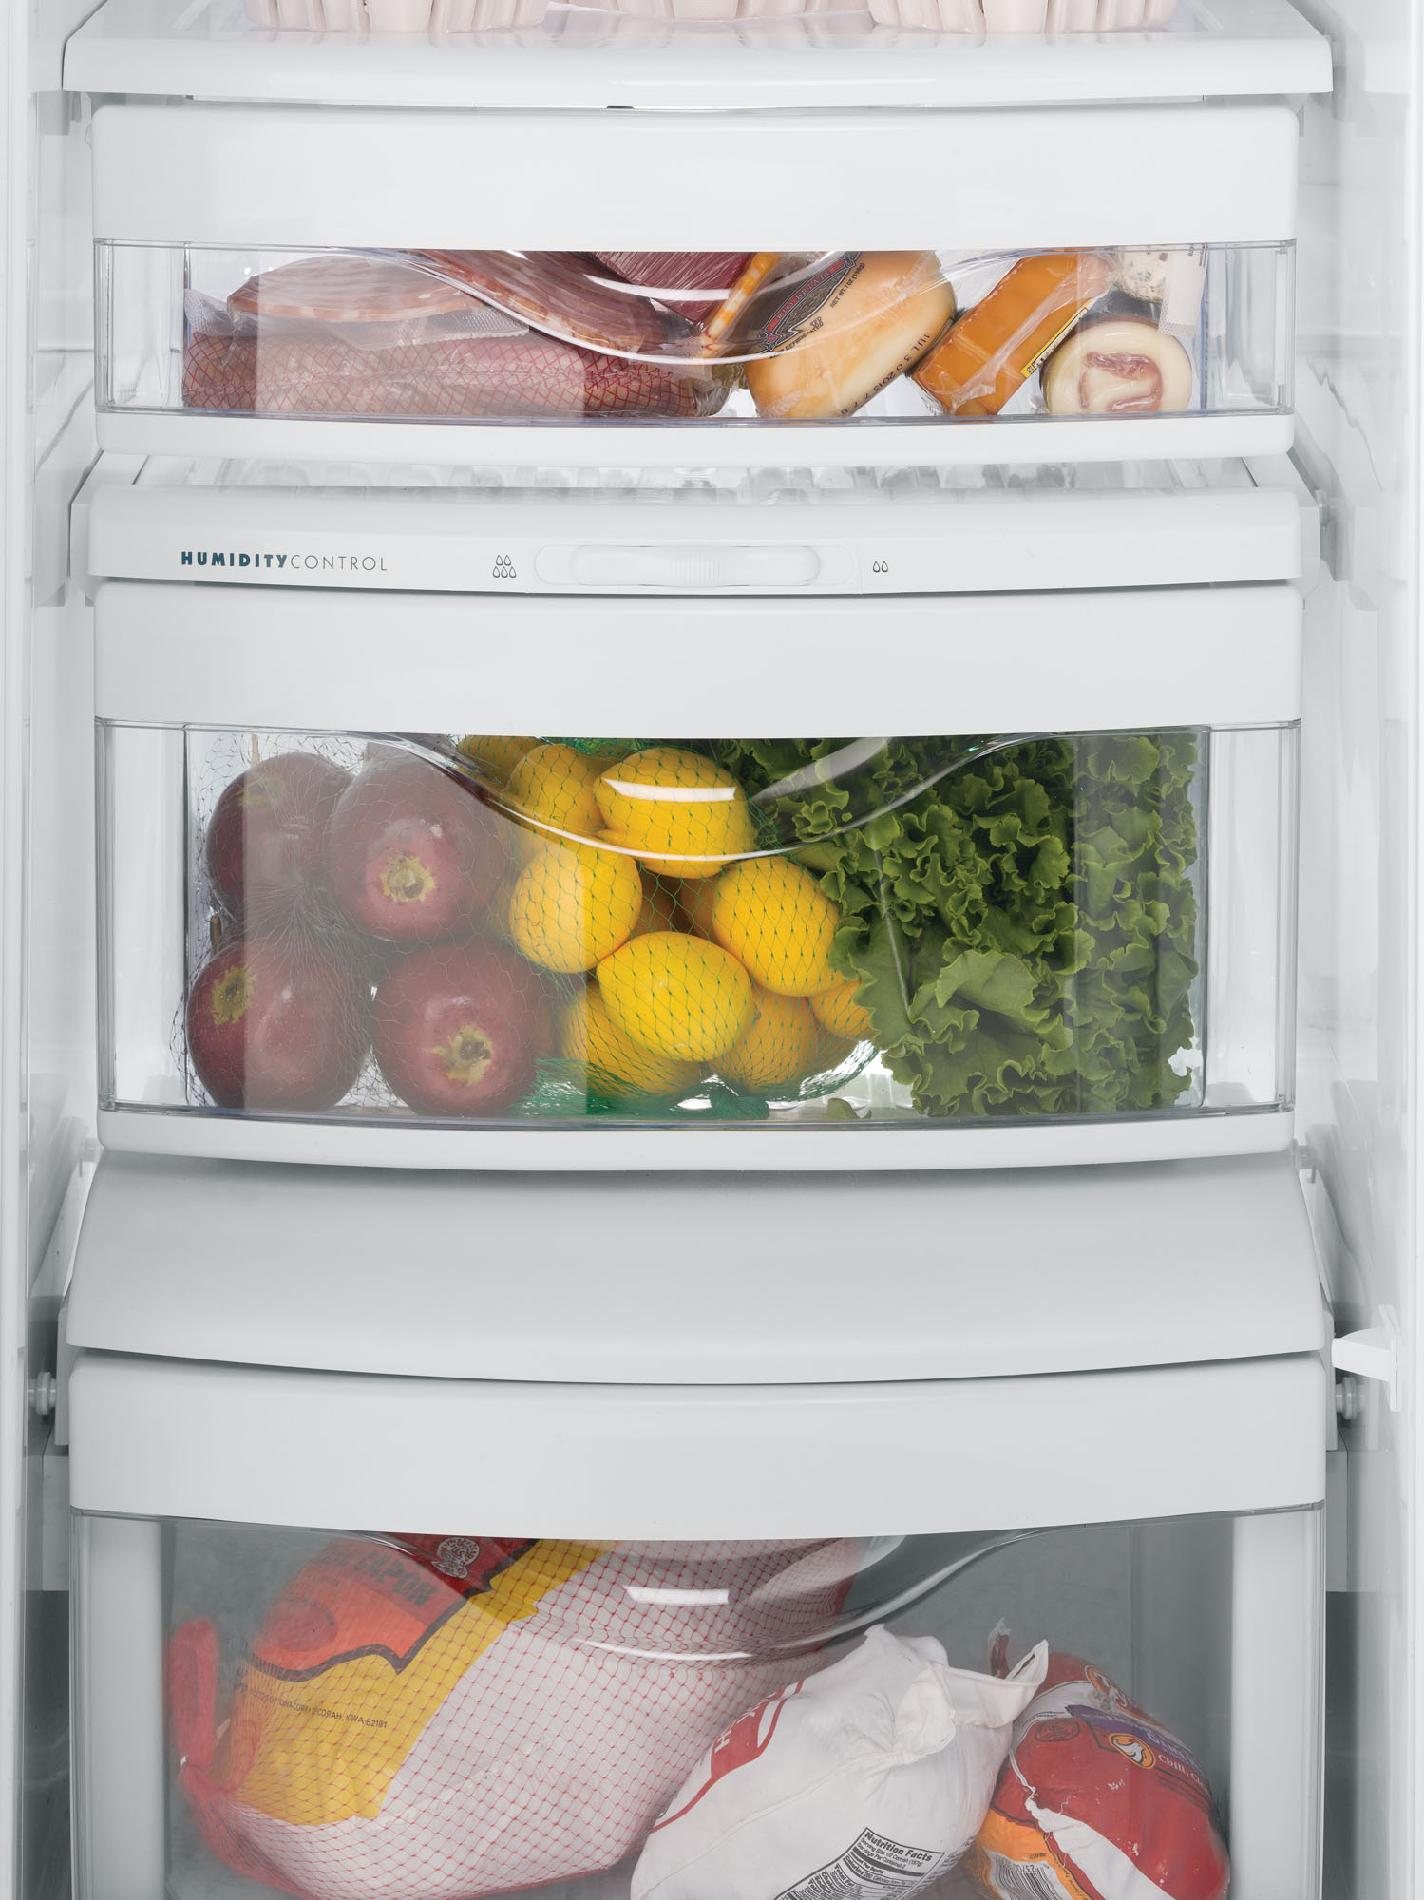 GE 22.7 cu. ft. Counter-Depth Side-by-Side Refrigerator w/ Dispenser - White